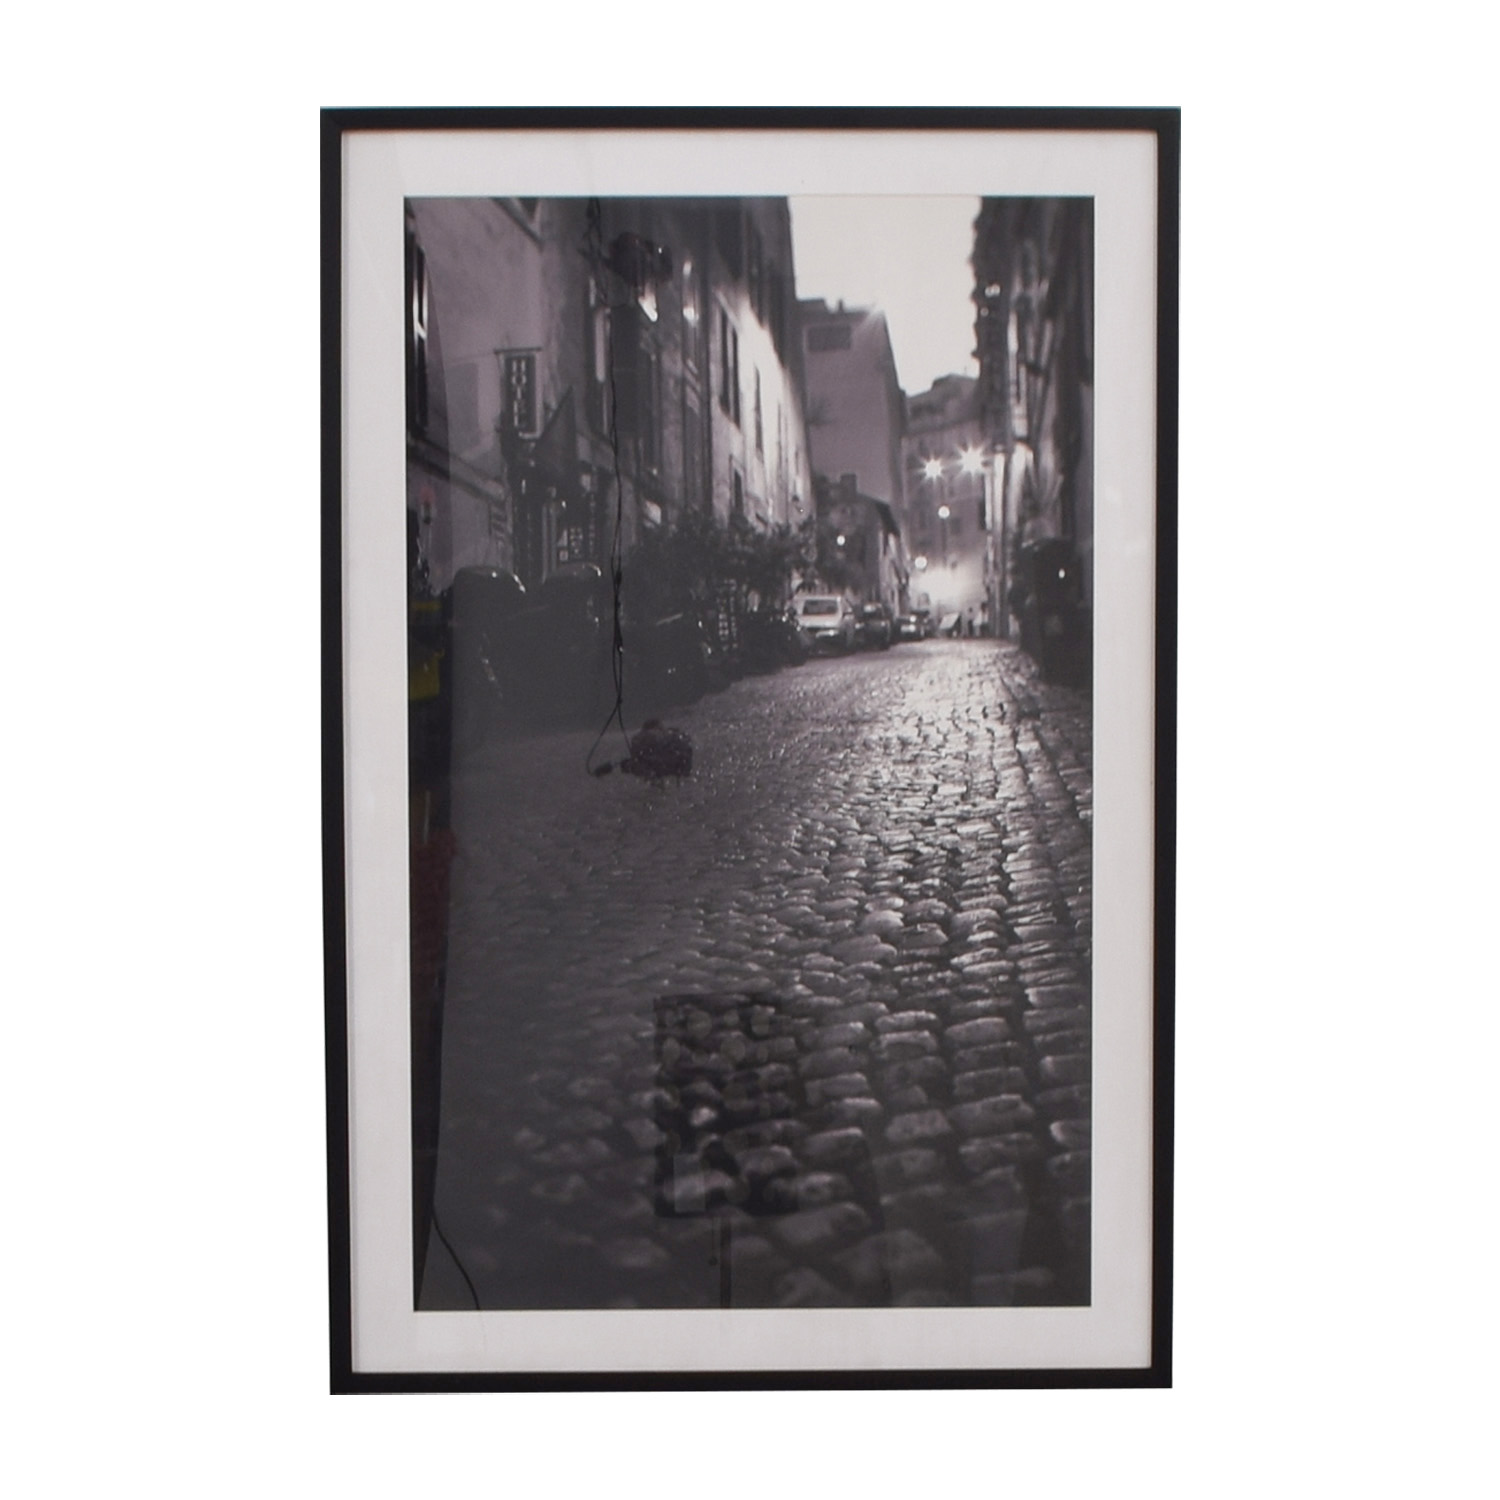 Pottery Barn Pottery Barn Framed Photograph Cobblestone Street in Black and White nj